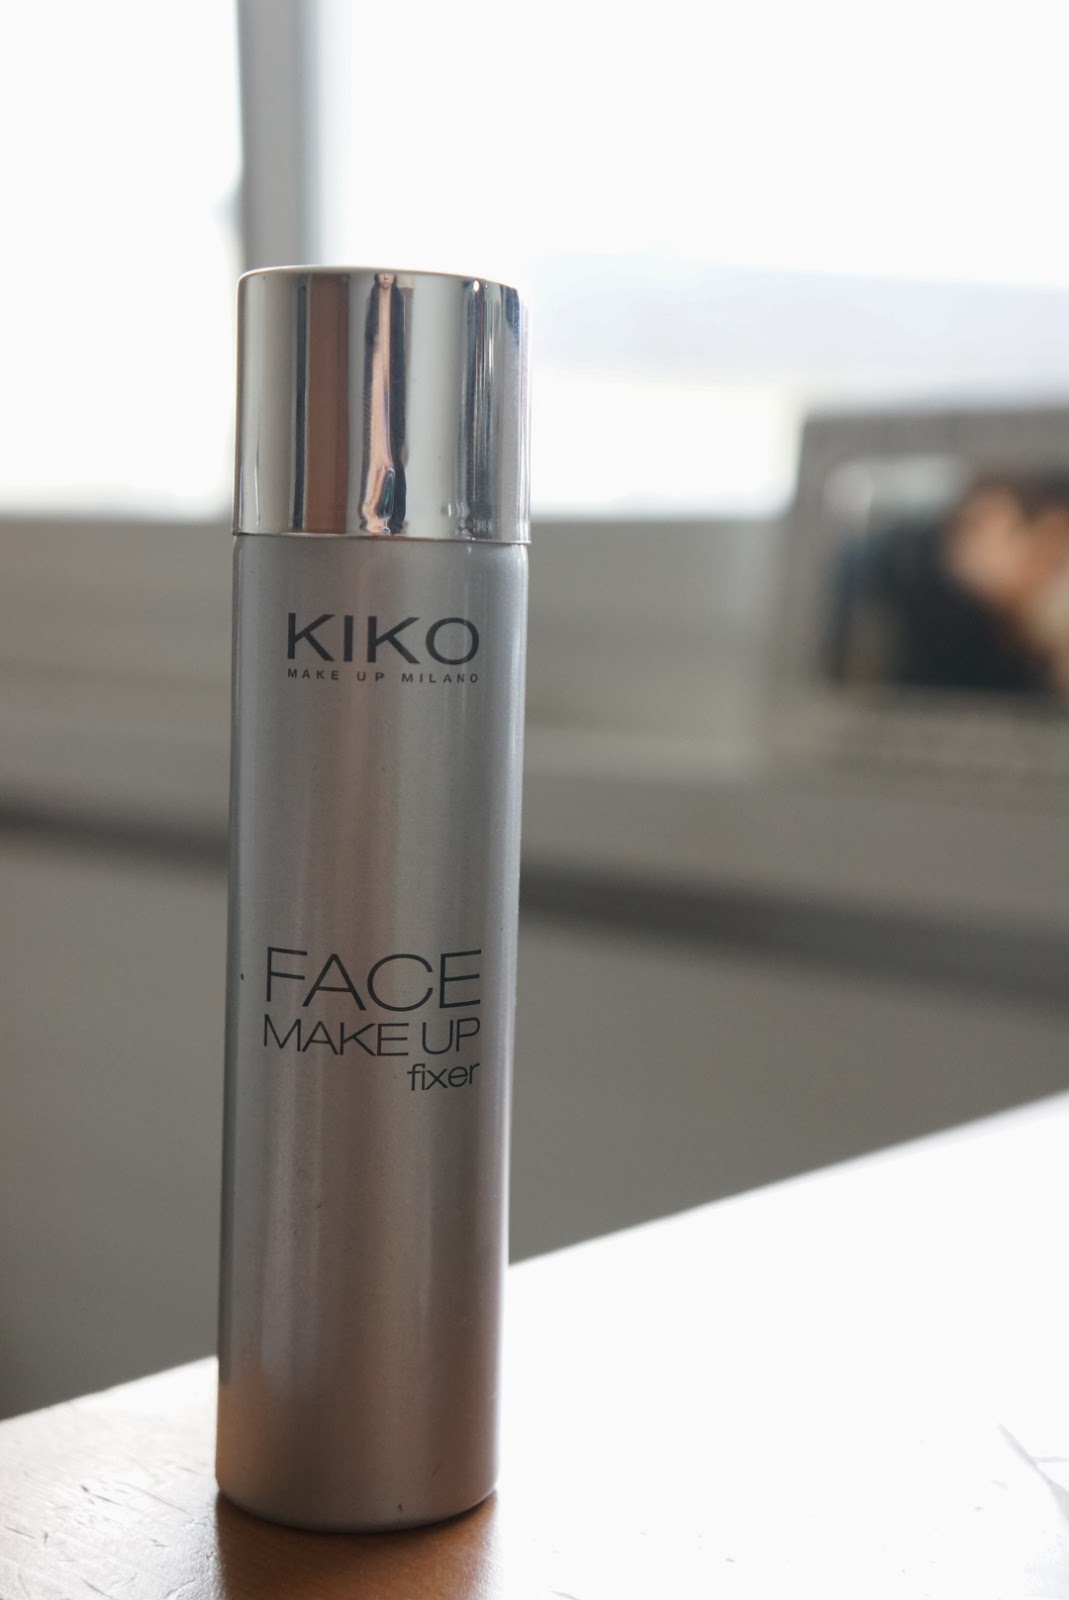 KIKO Face Make-up Fixer -- Review